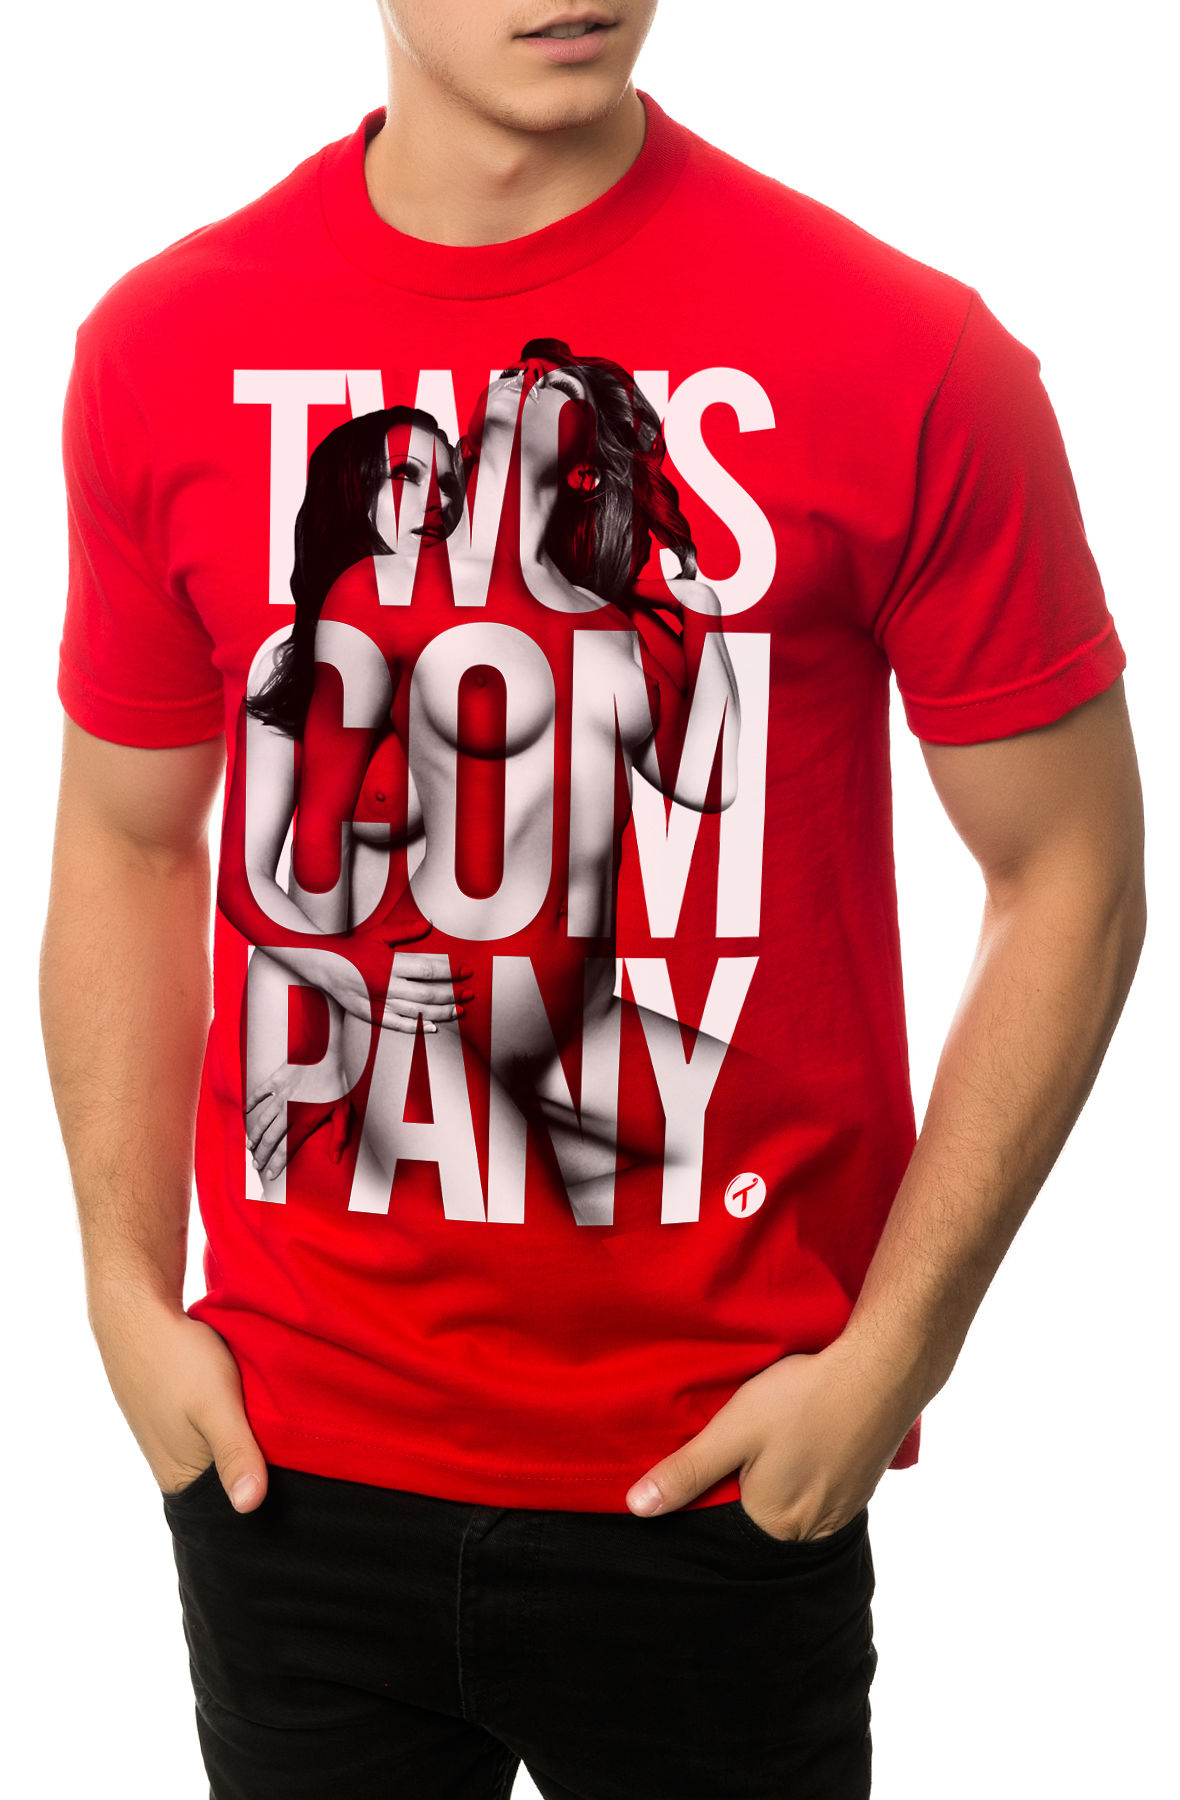 Image of The Two's Company Tee in Red